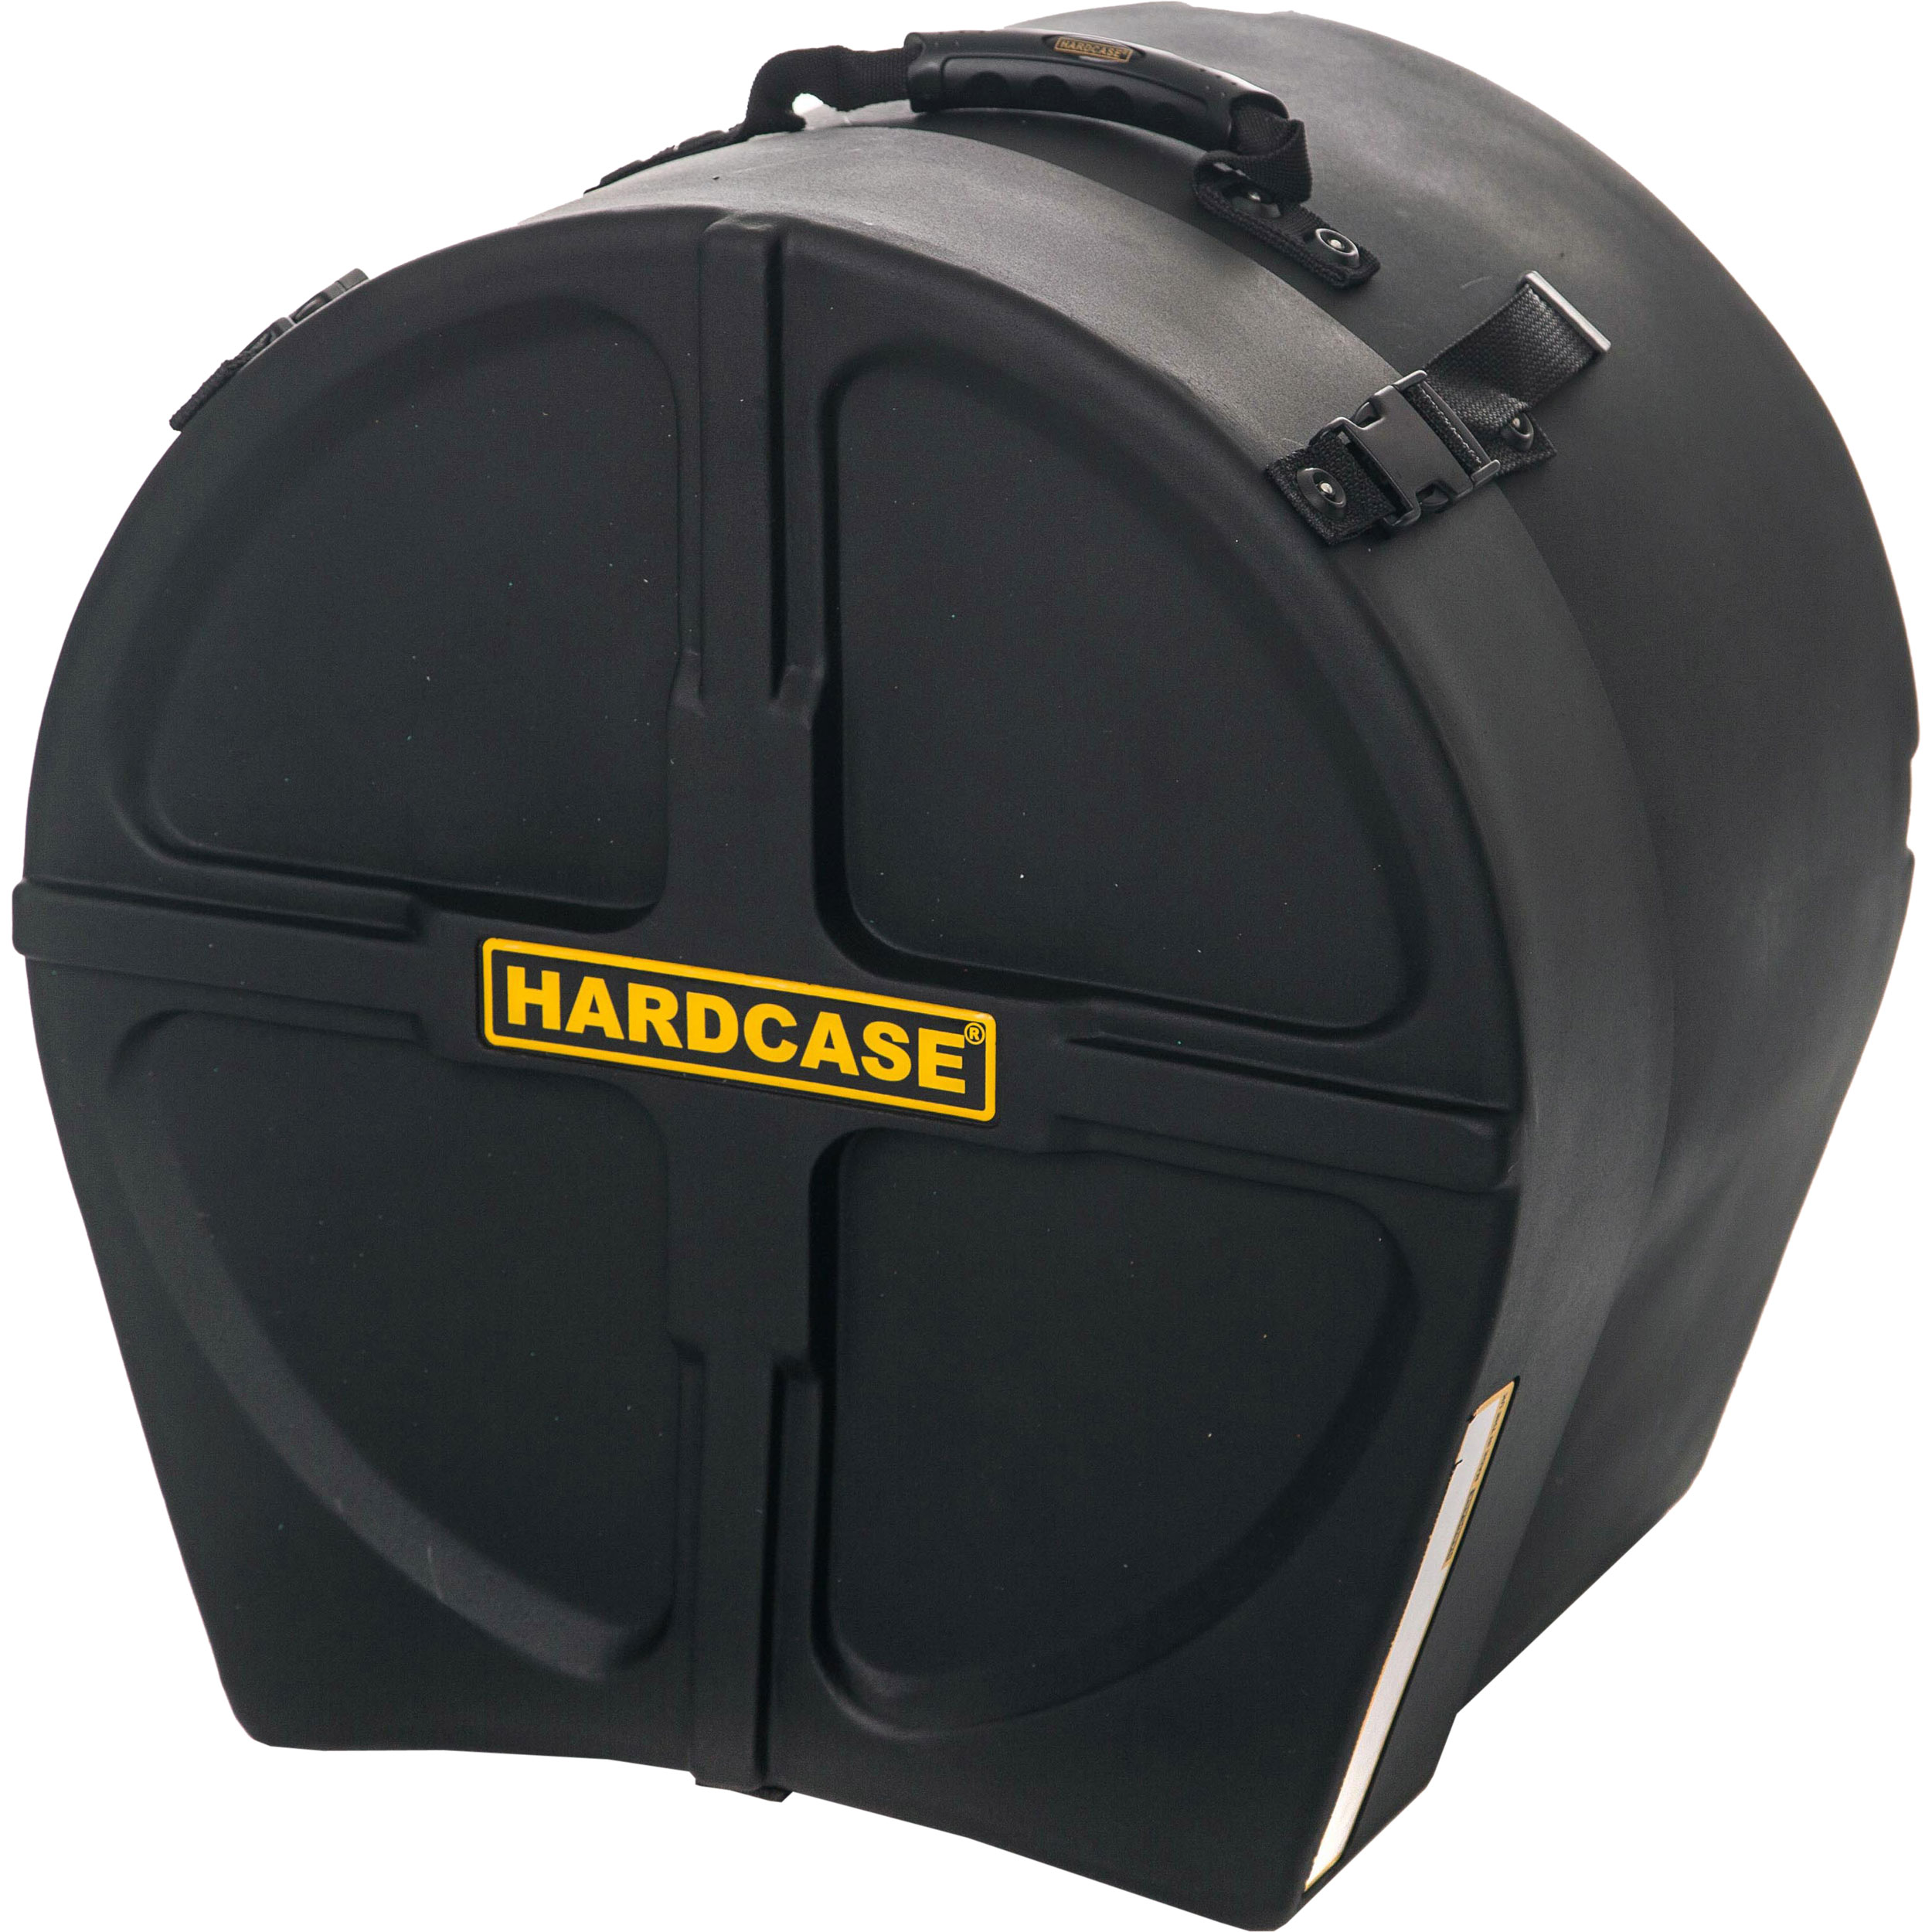 "Hardcase 16"" (Diameter) x 14-to-16"" (Deep) Floor Tom Case"